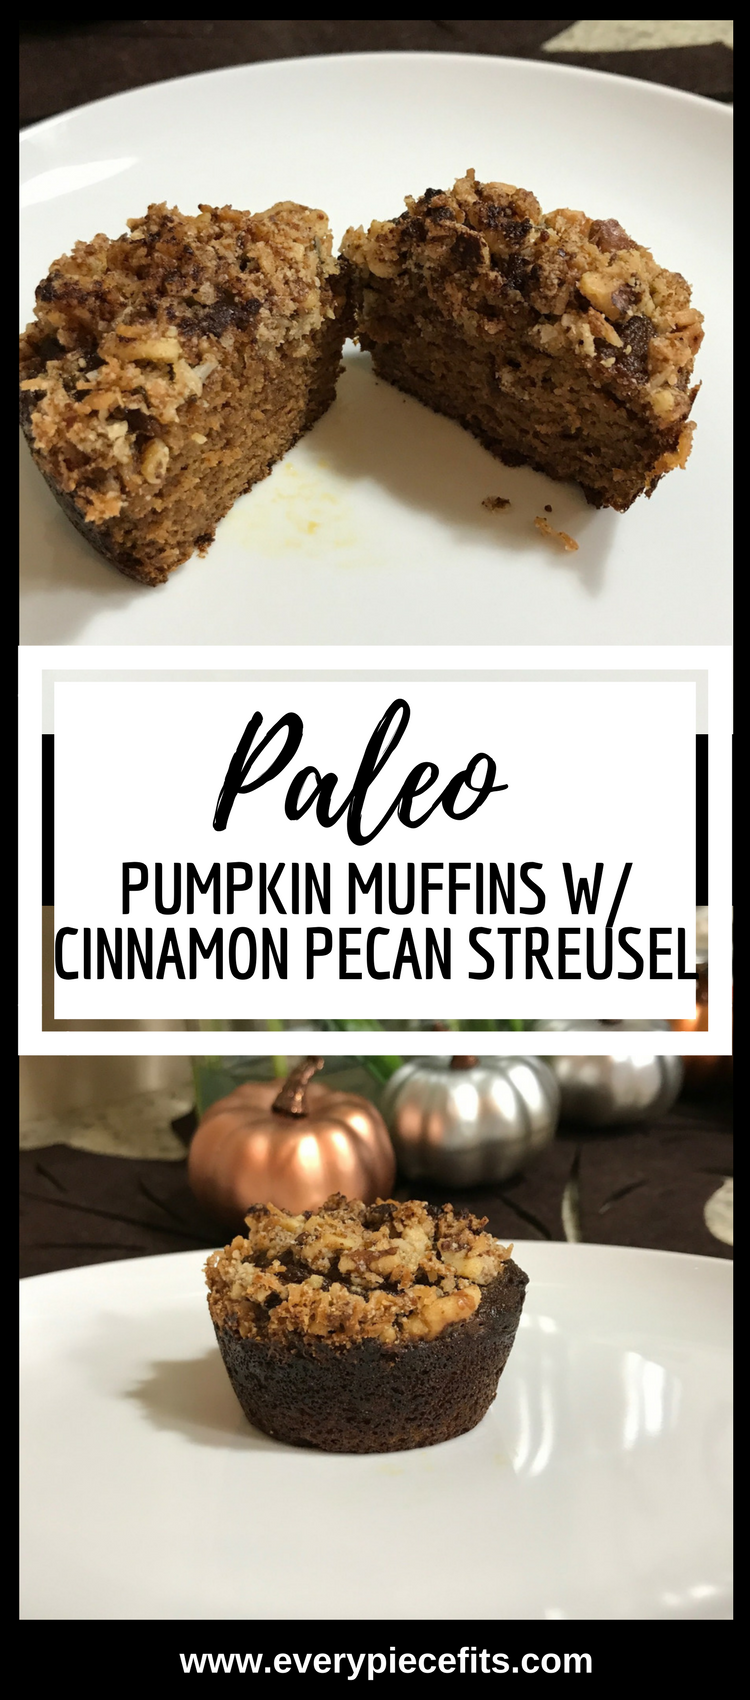 Paleo Pumpkin Muffins with Cinnamon Pecan Streusel.png